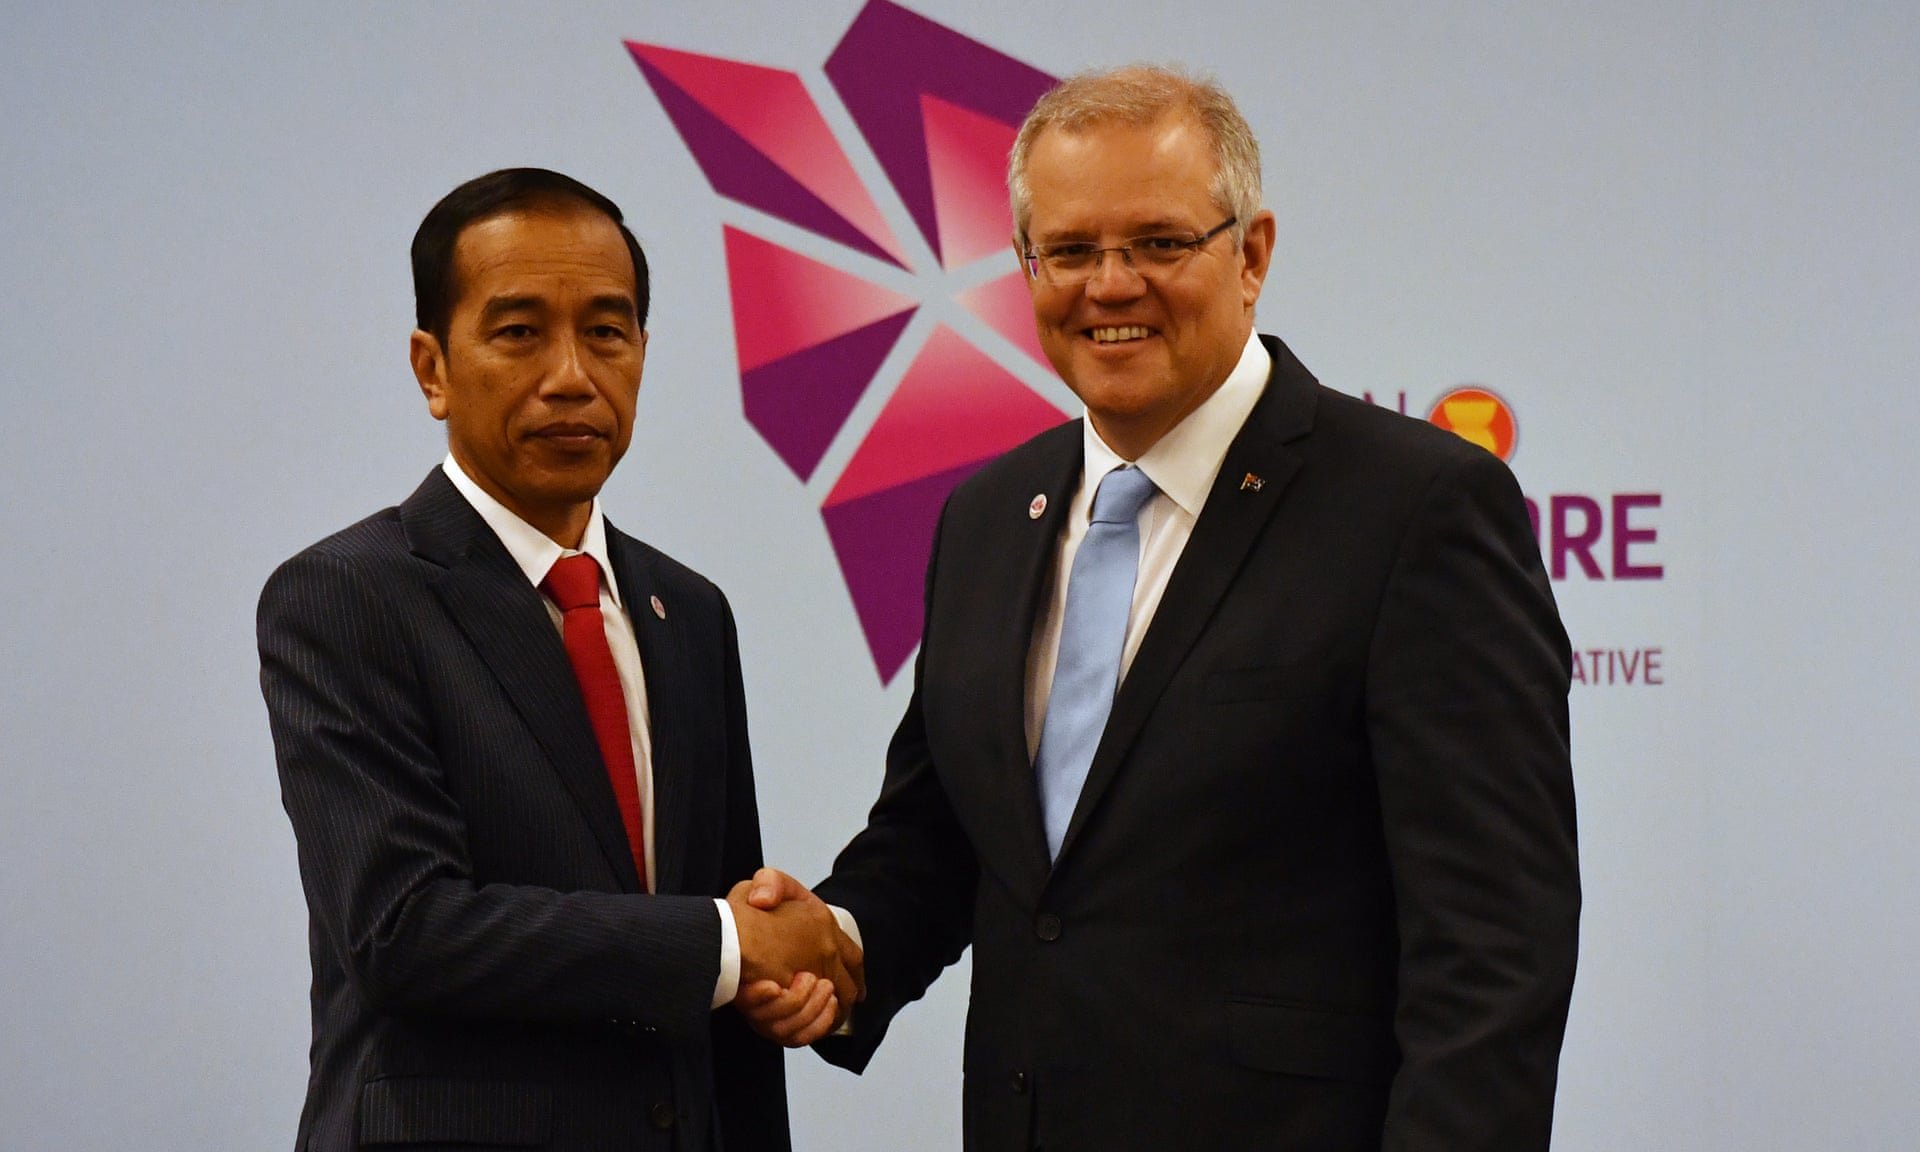 AUSTRALIA-INDONESIA FREE TRADE AGREEMENT WILL SOON BE SIGNED